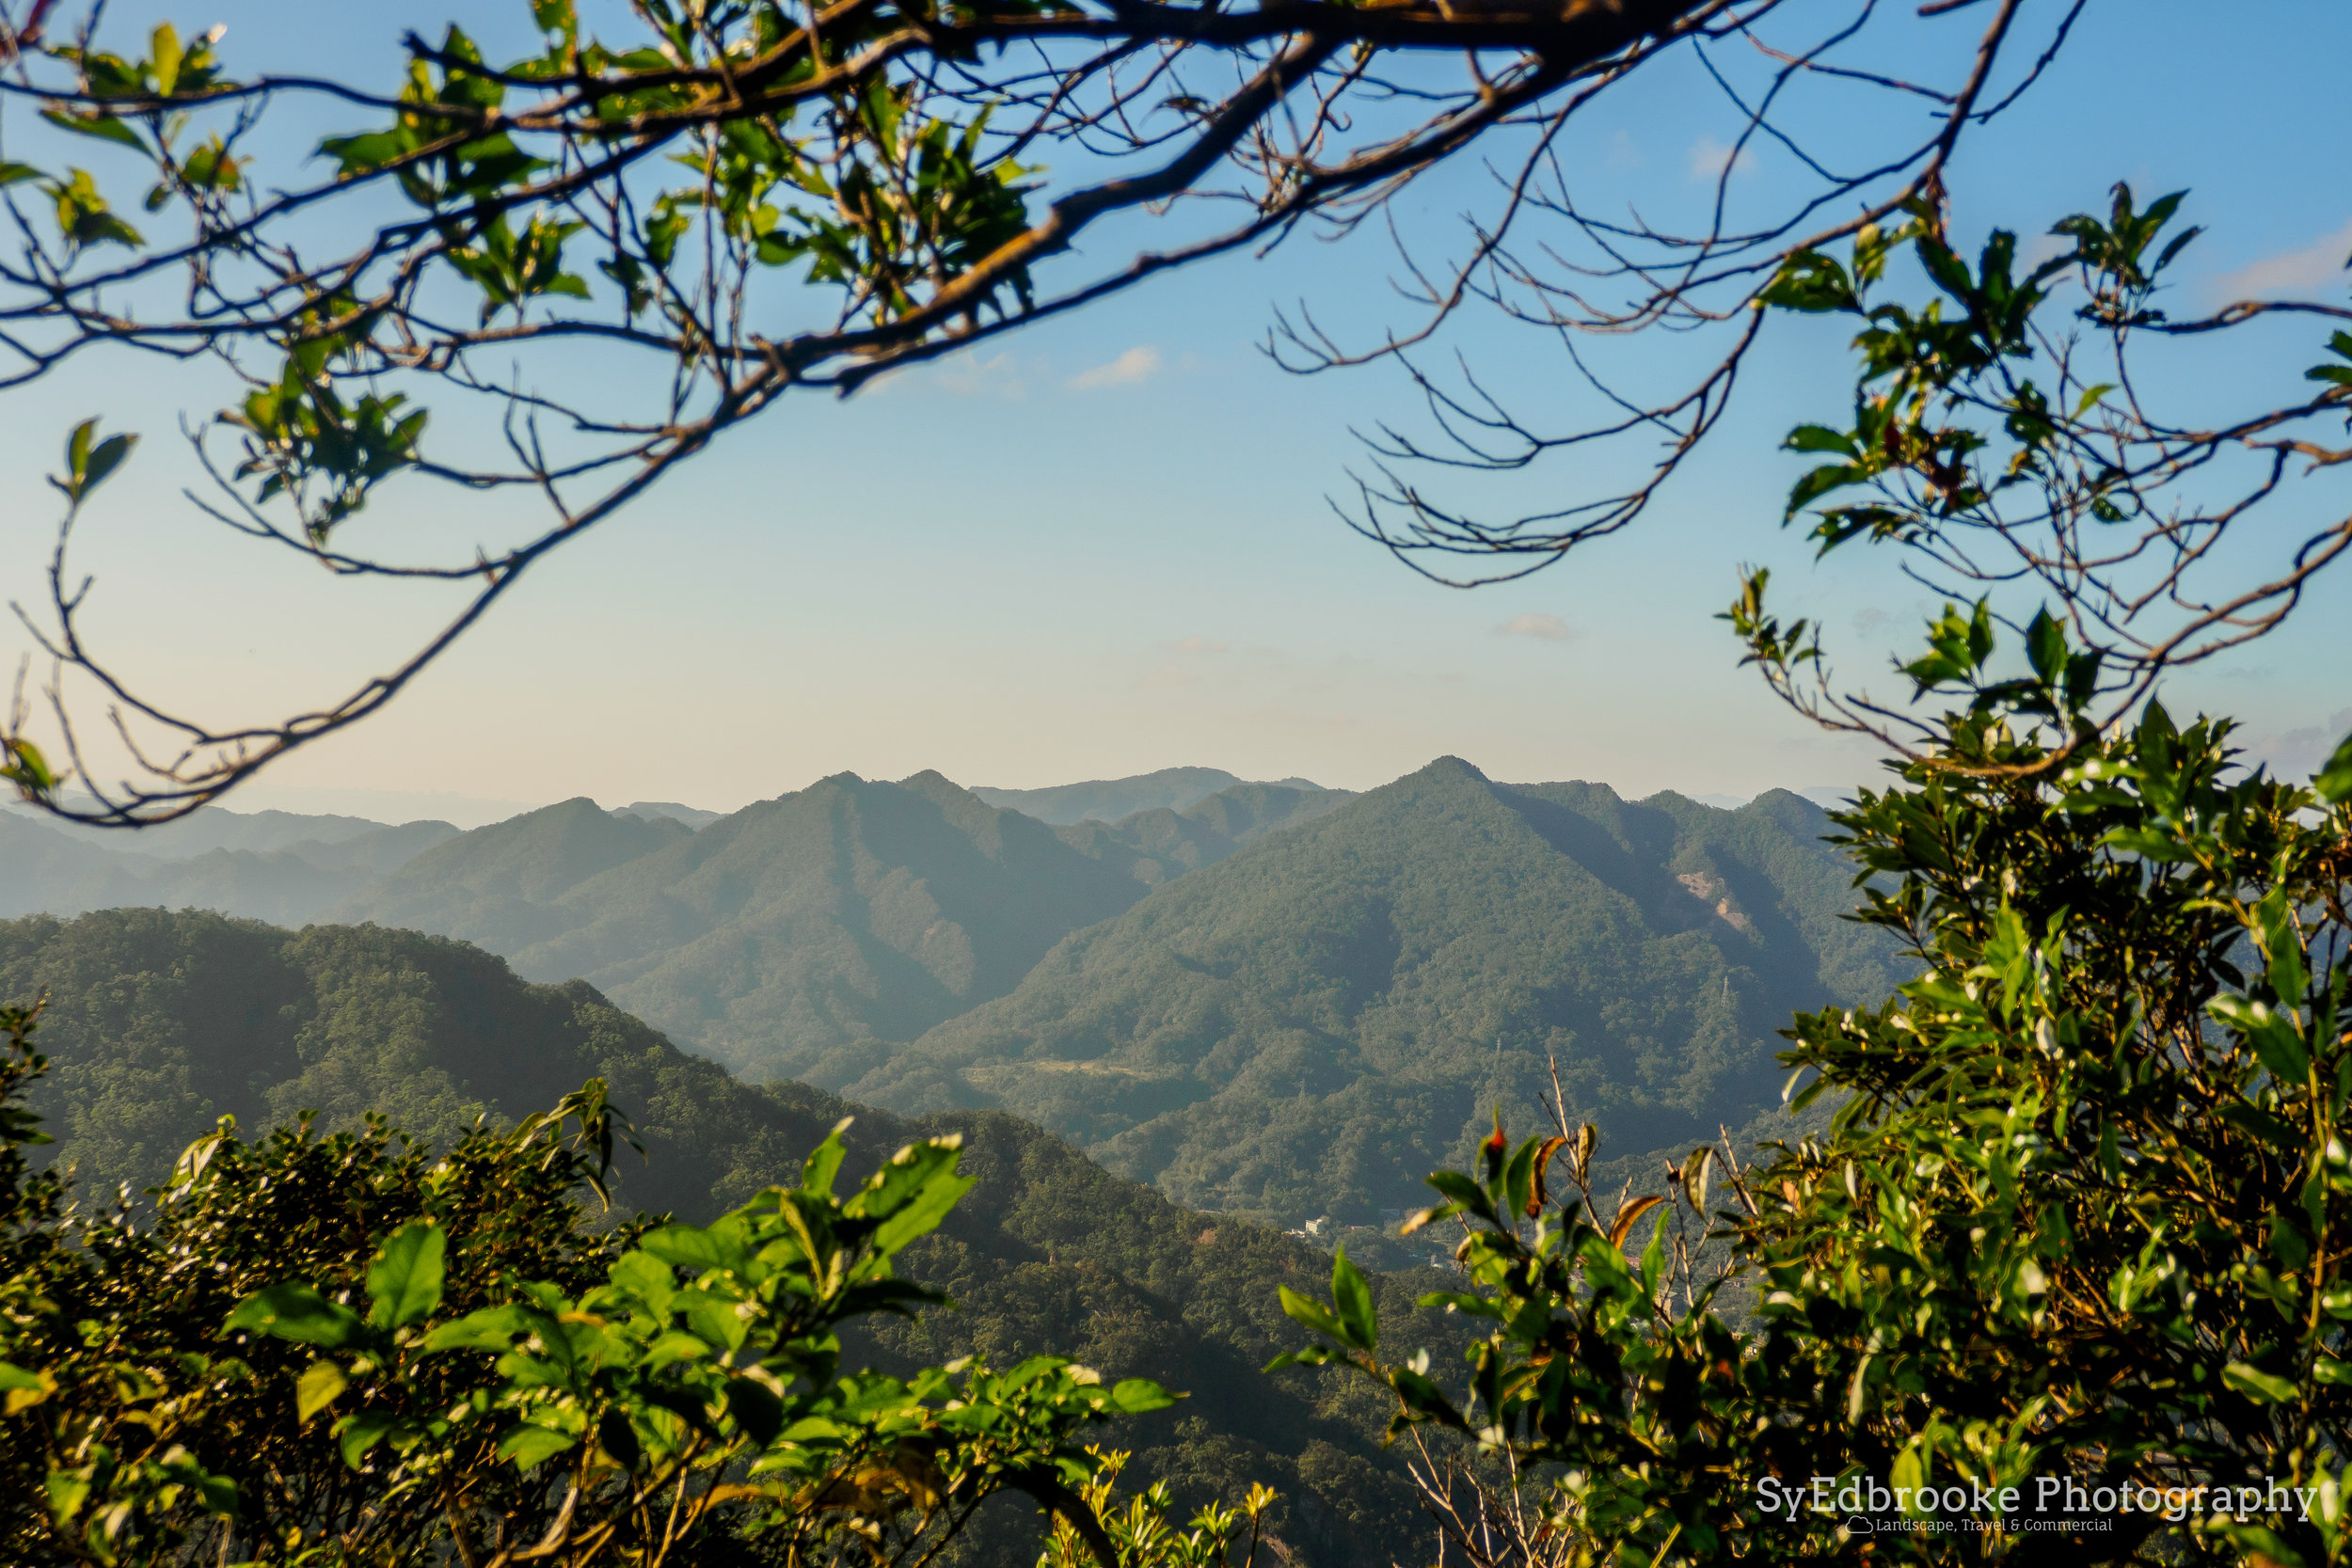 catching the start of golden hour at the Jianshan peak. f4.6, ISO 200, 1/400, 40mm